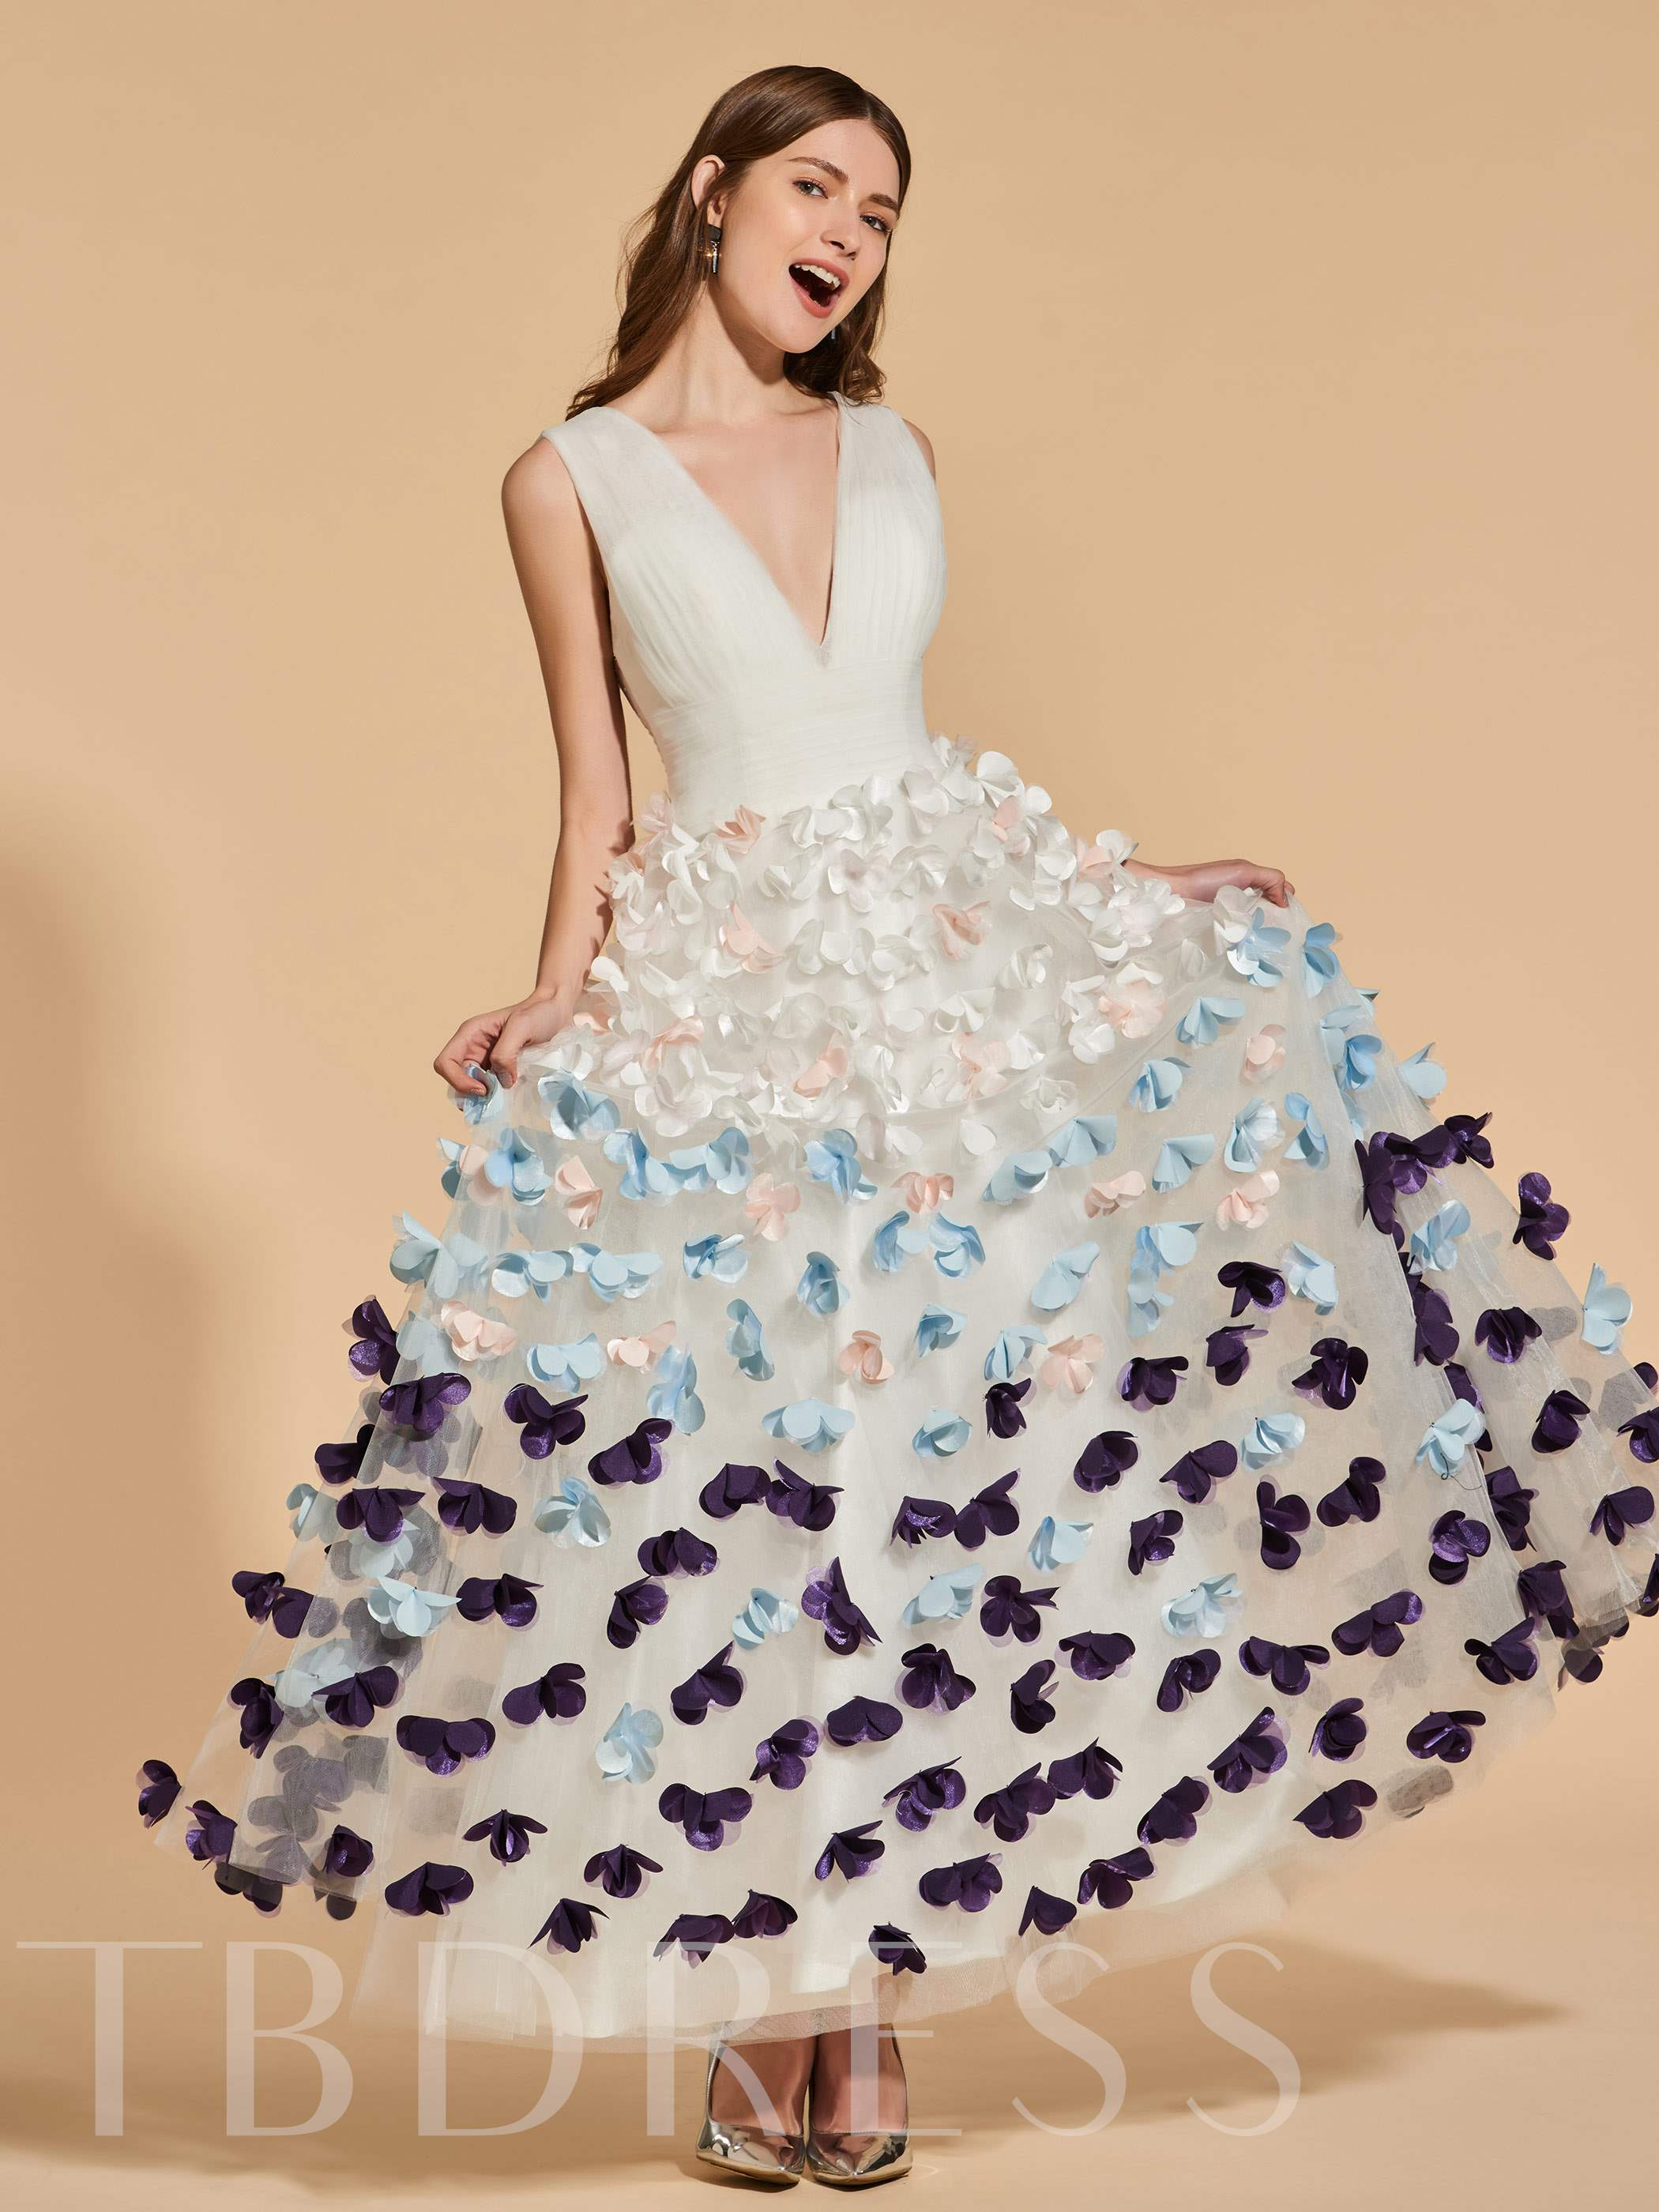 Buy A-Line Appliques V-Neck Prom Dress, Spring,Summer,Fall,Winter, 13156140 for $153.24 in TBDress store